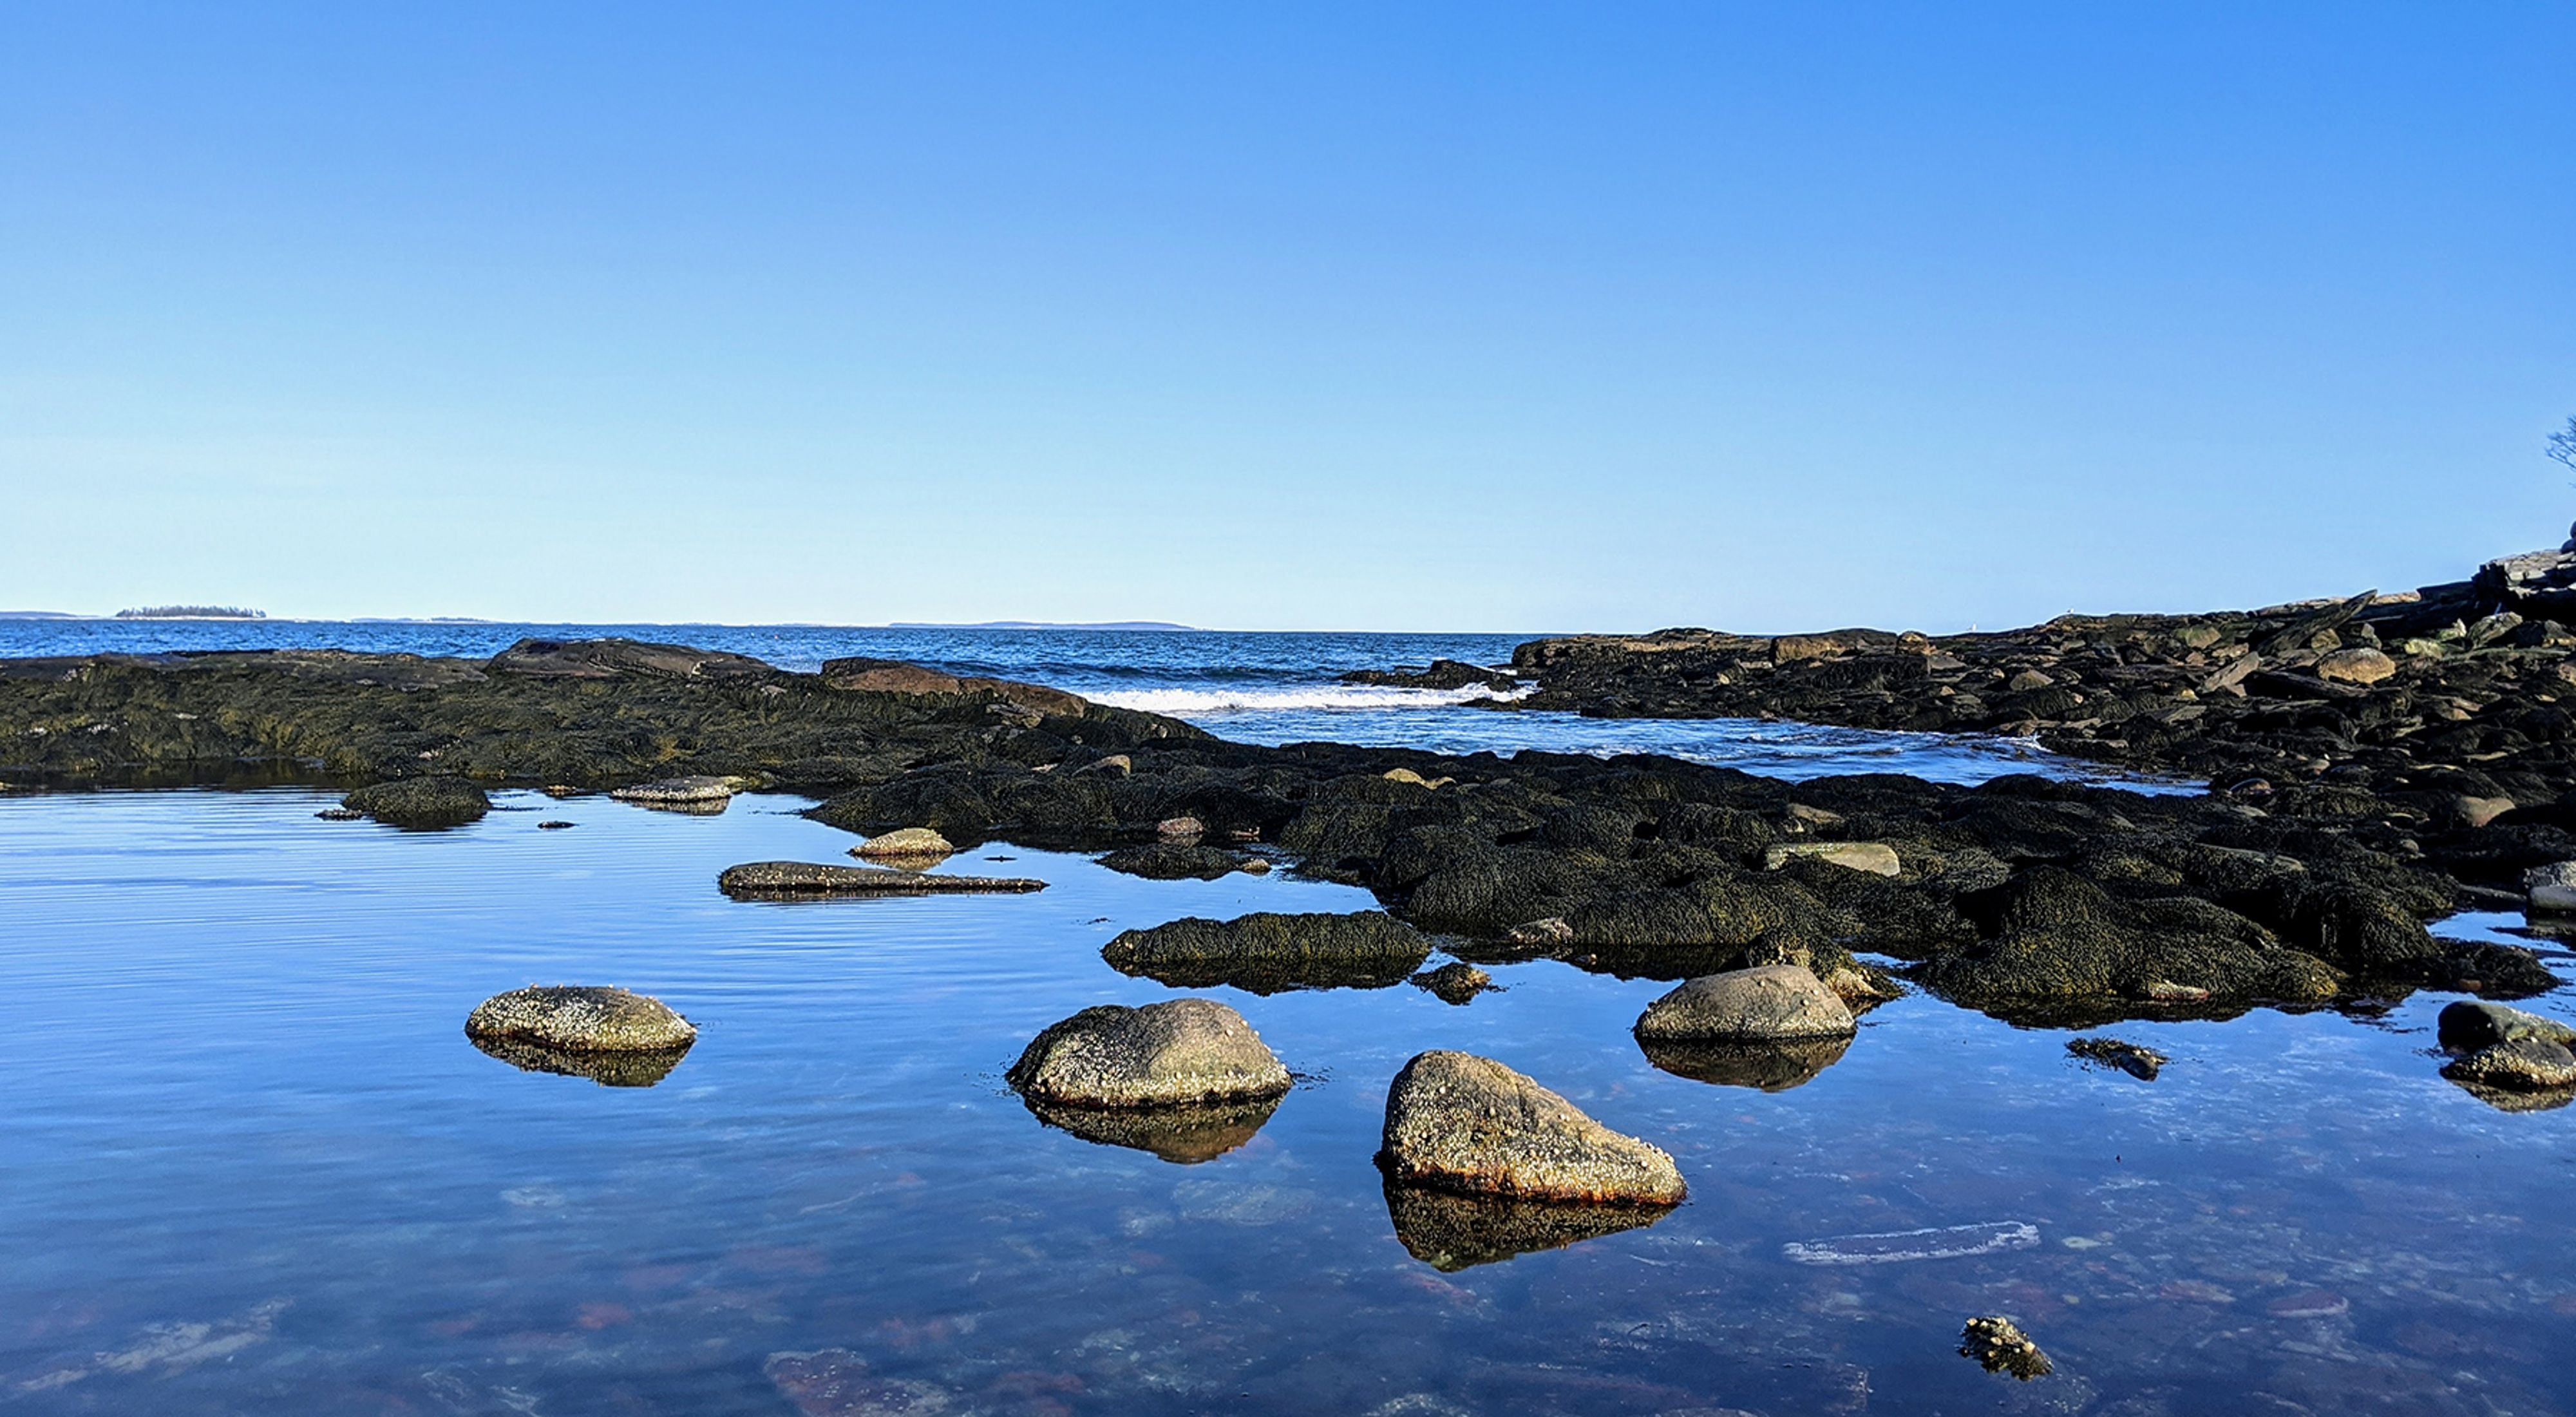 Rocky tidepools along the shore at Rachel Carson Salt Pond Preserve in Maine.